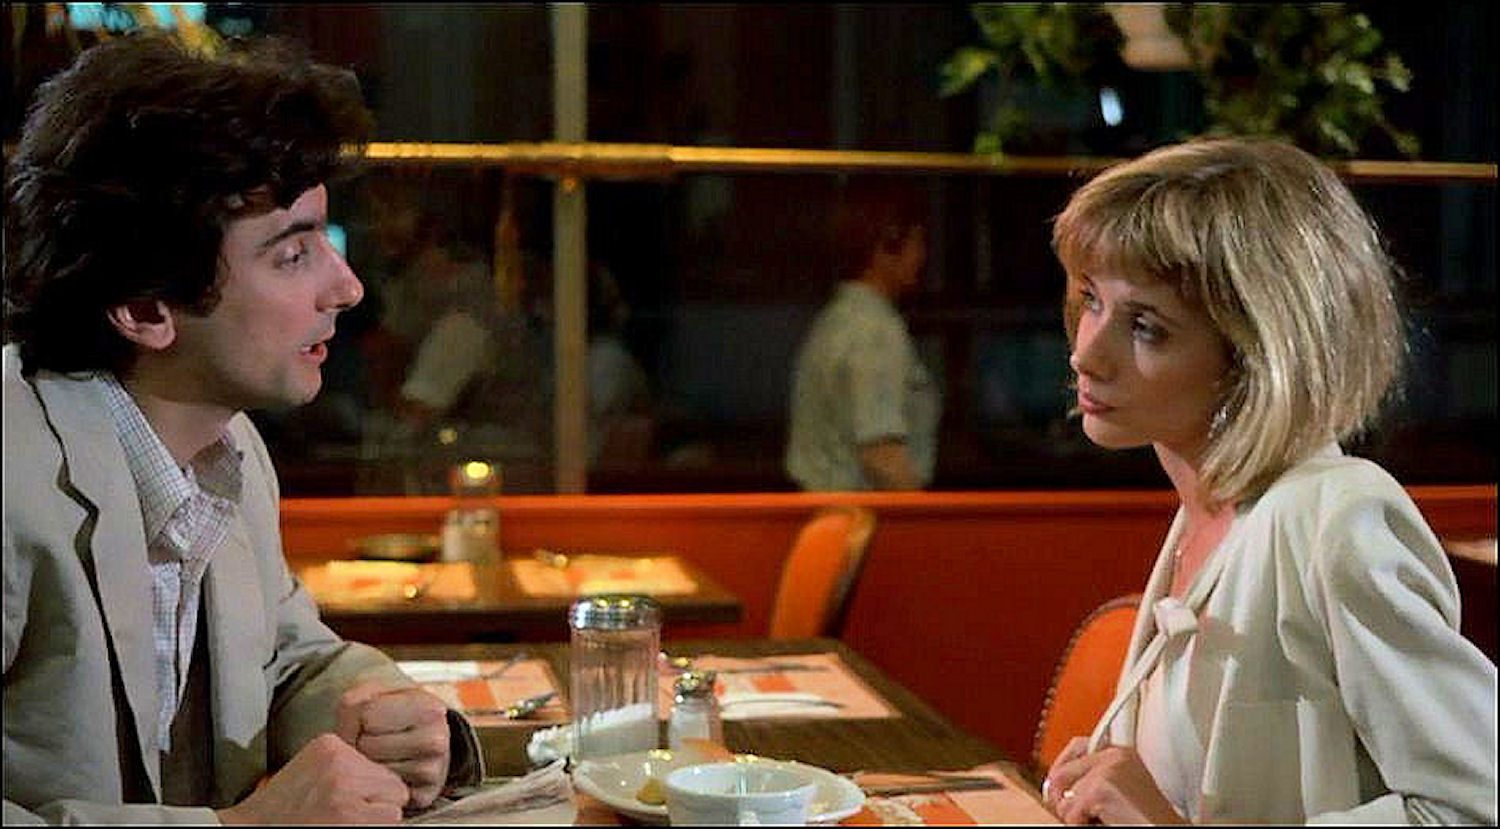 After Hours - 1985 - Comedy - Crime - Drama